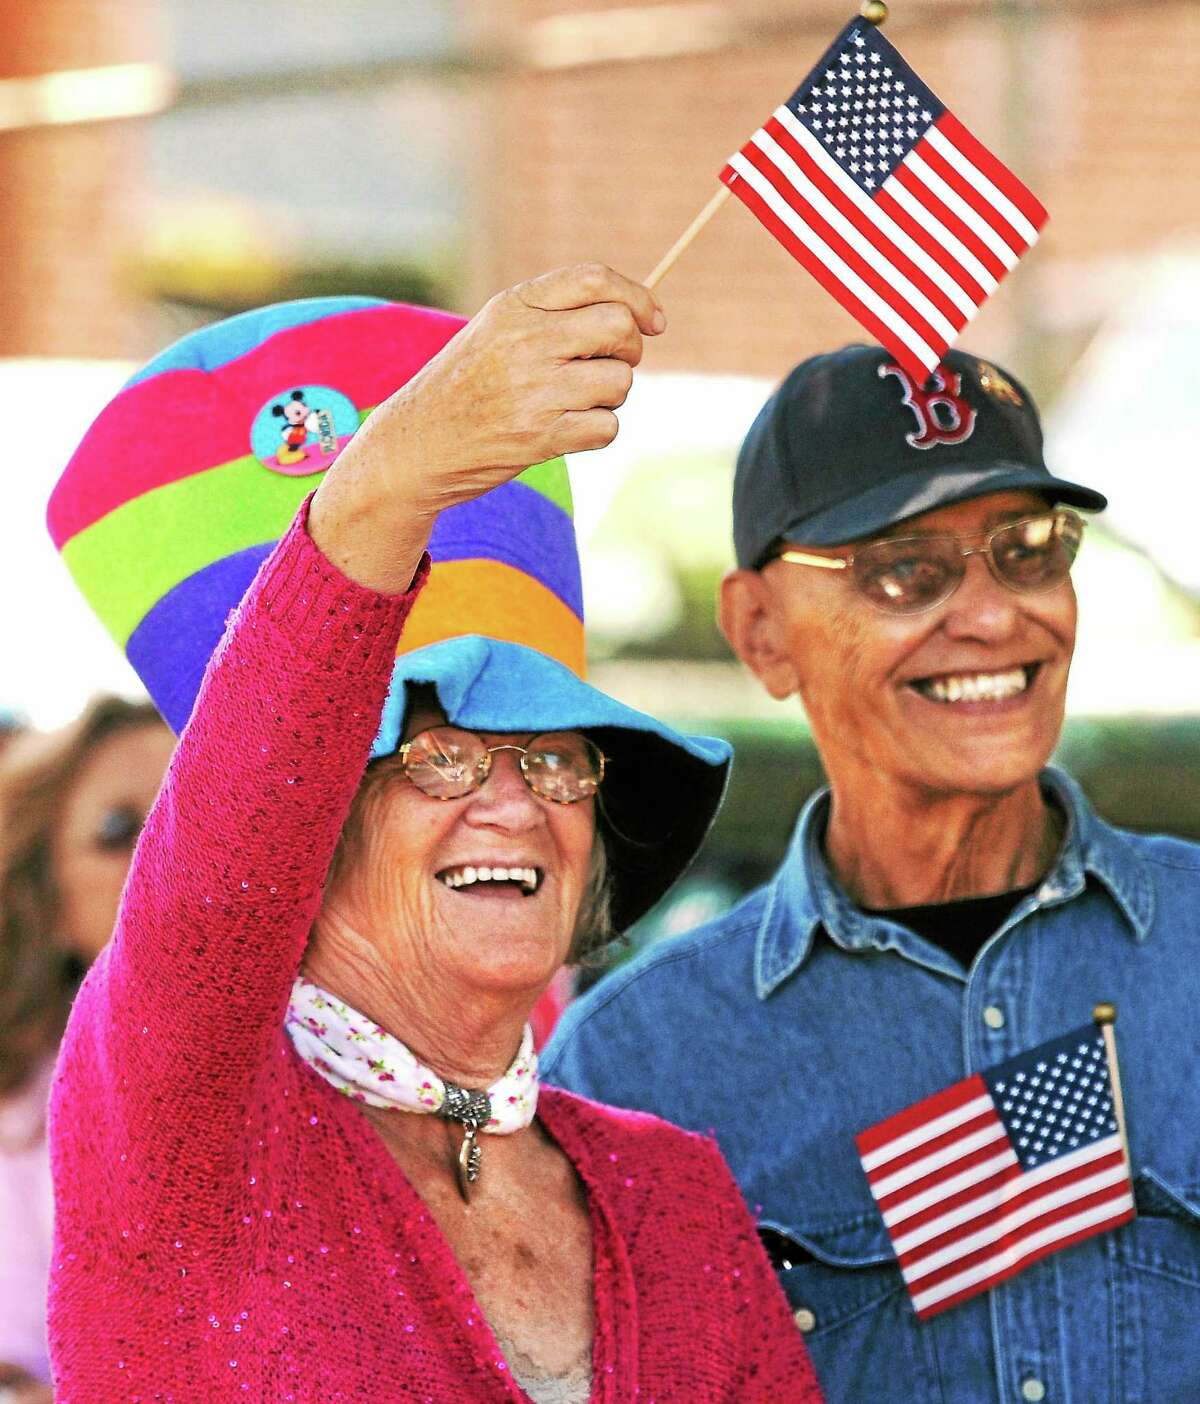 (Mara Lavitt ó New Haven Register) June 15, 2014 Milford Milford celebrated its 375th anniversary with a parade through downtown. Maria and Herbert Chmidtke of Milford watch the parade come down River St. mlavitt@newhavenregister.com